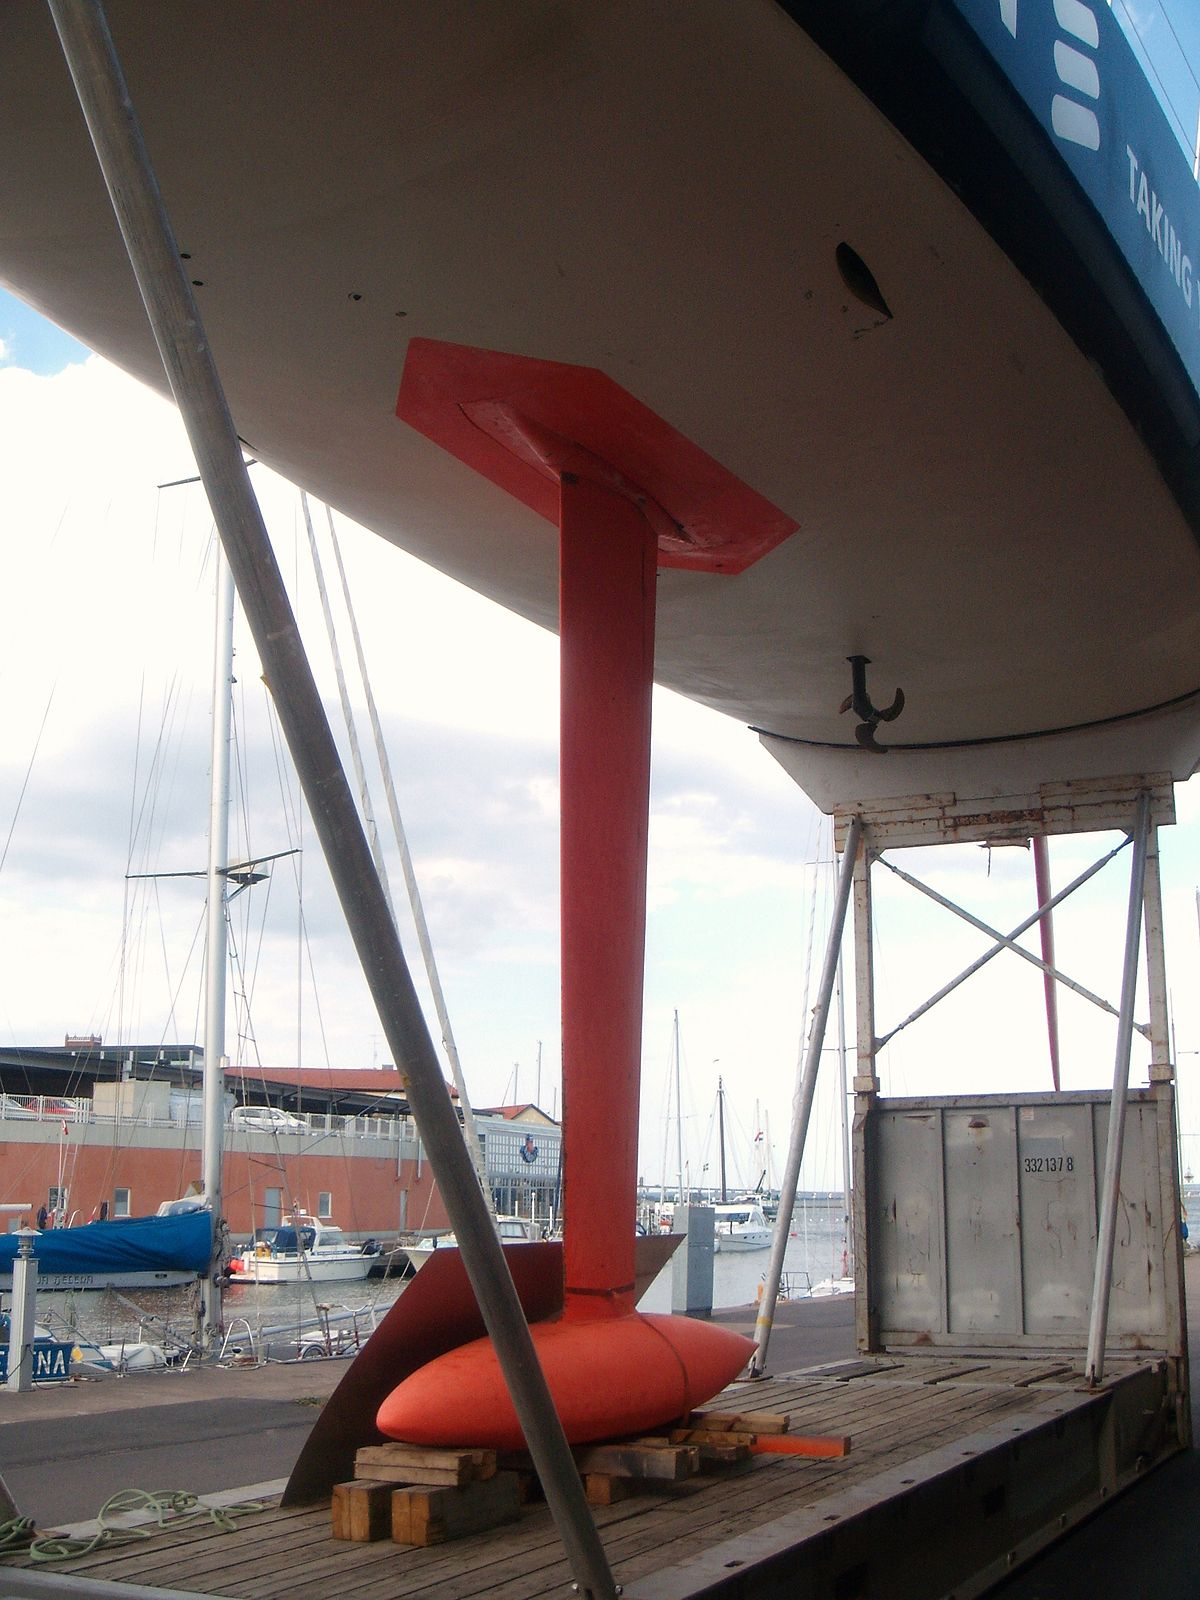 Canting Keel Wikipedia